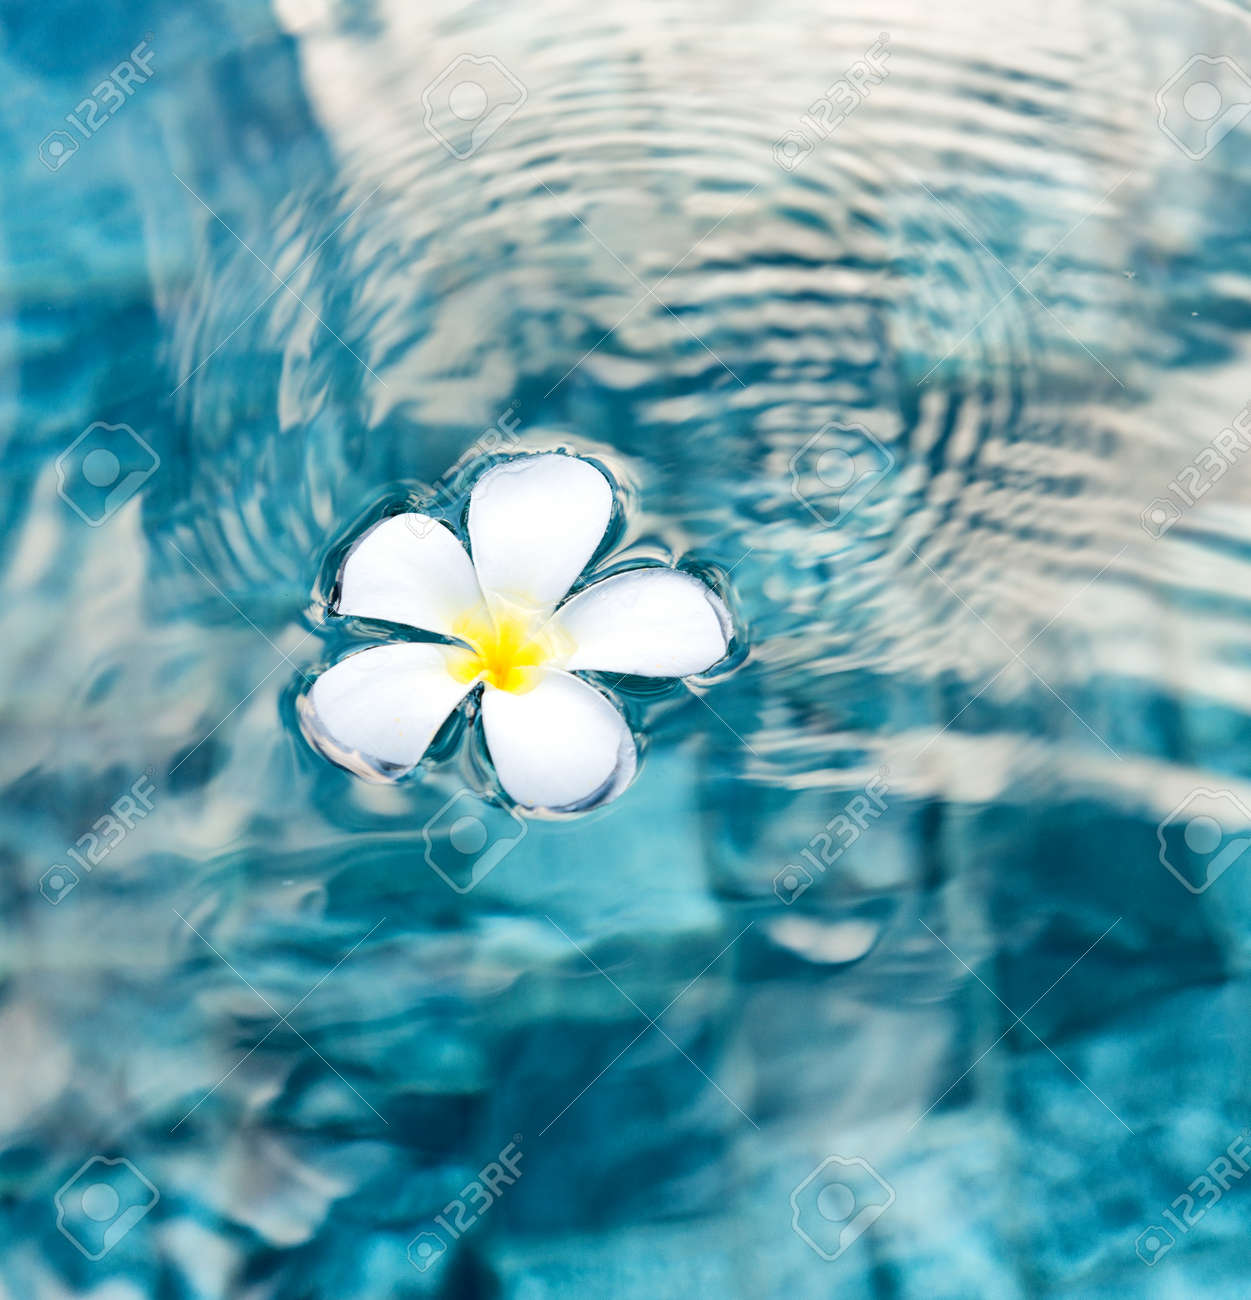 Single Peaceful Plumeria Flower Floating on Clear Rippling Water Stock Photo - 33441369